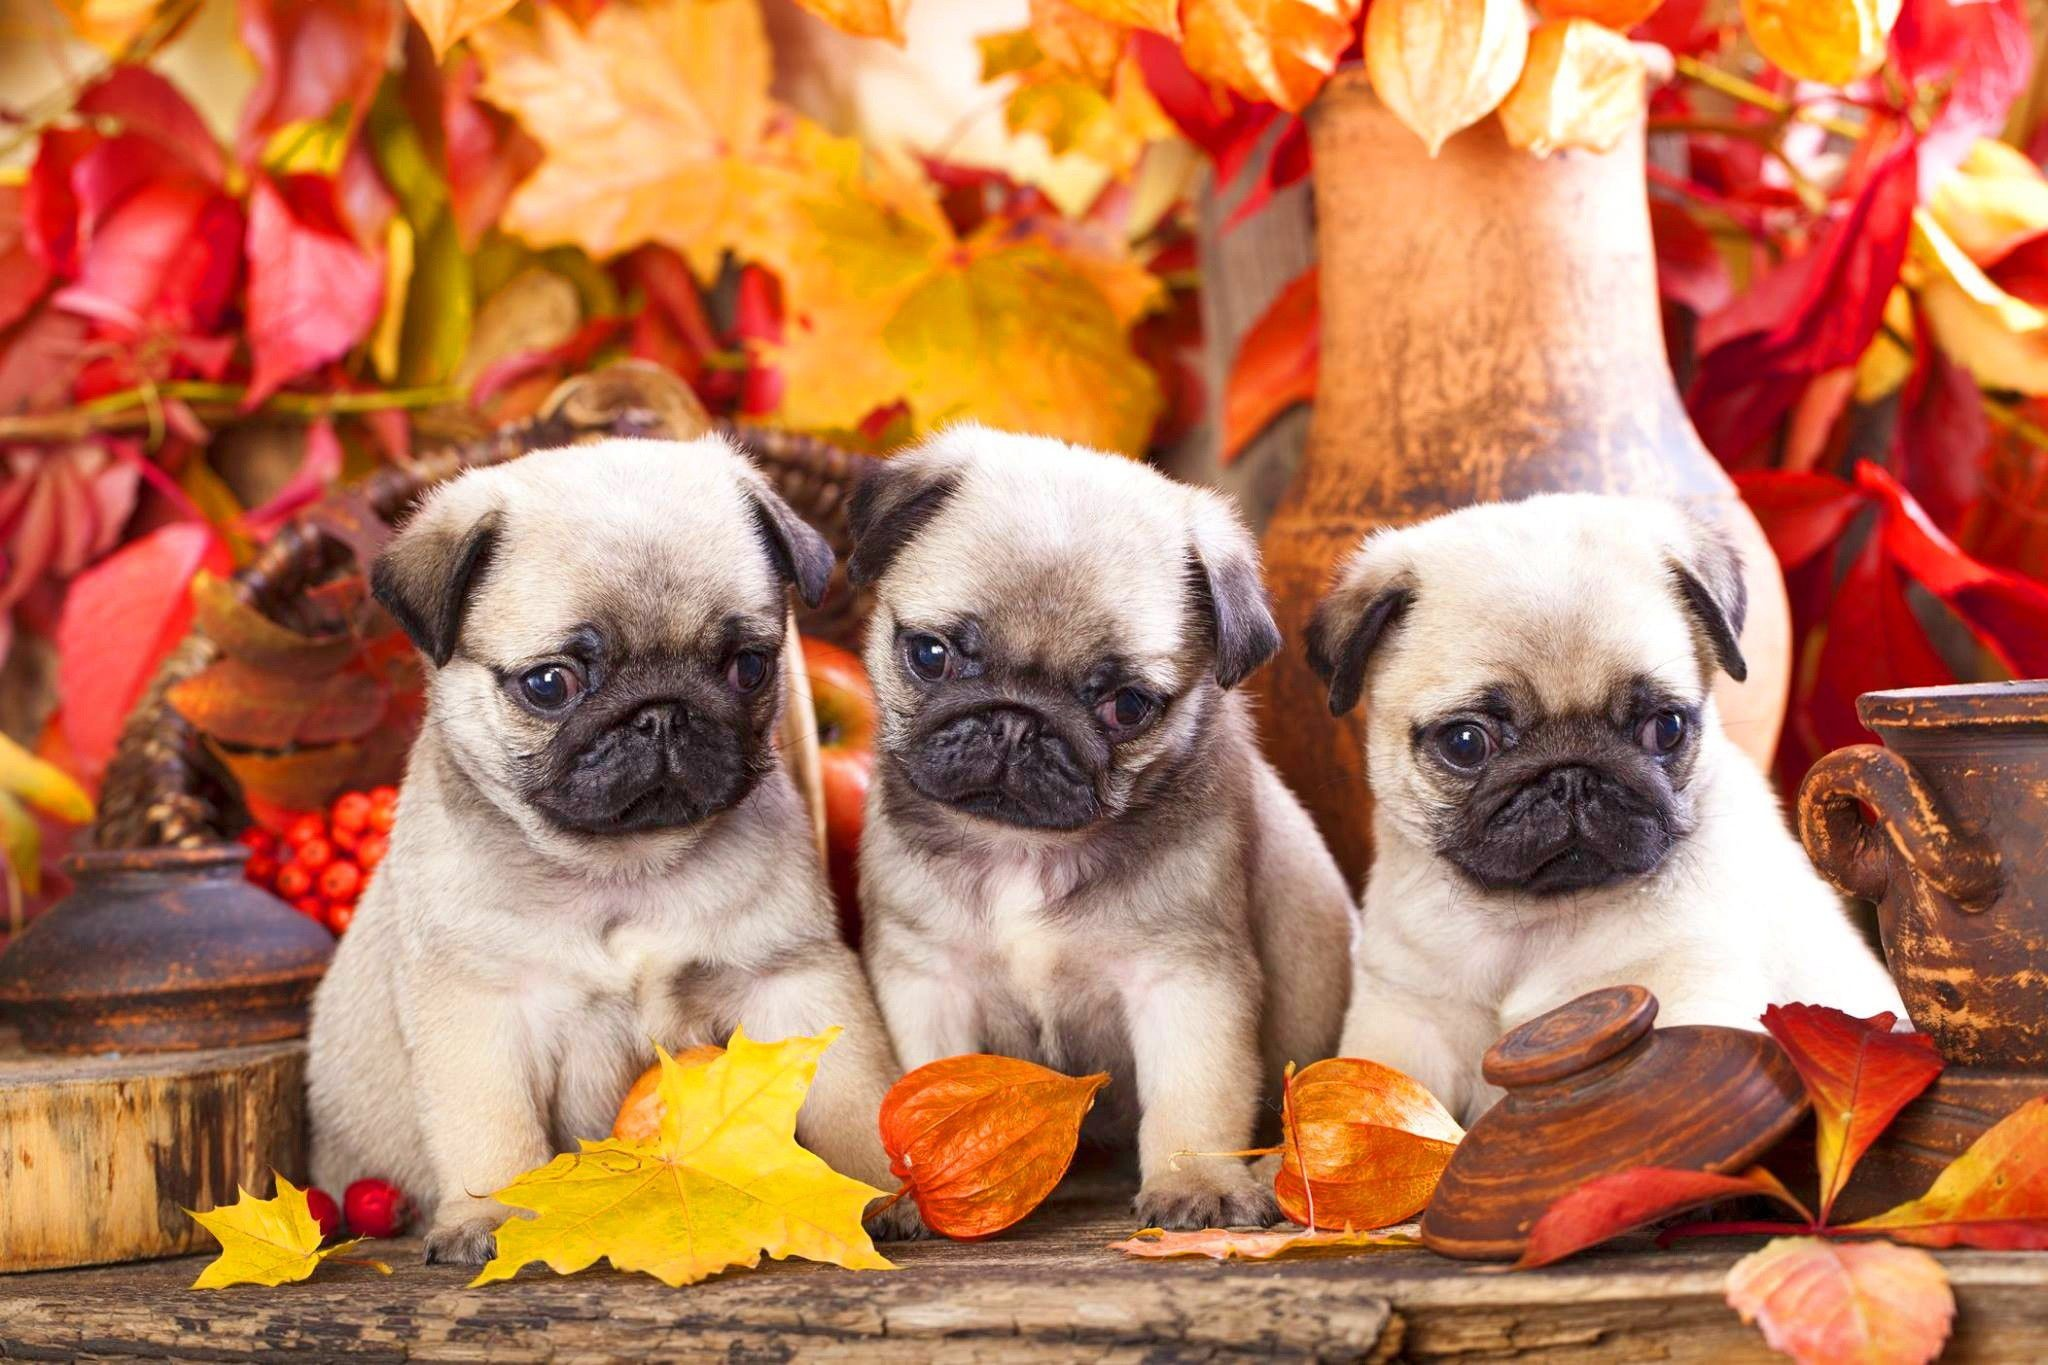 Cute Puppies Wallpapers For Mobile Pug Puppies Wallpaper 61 Images